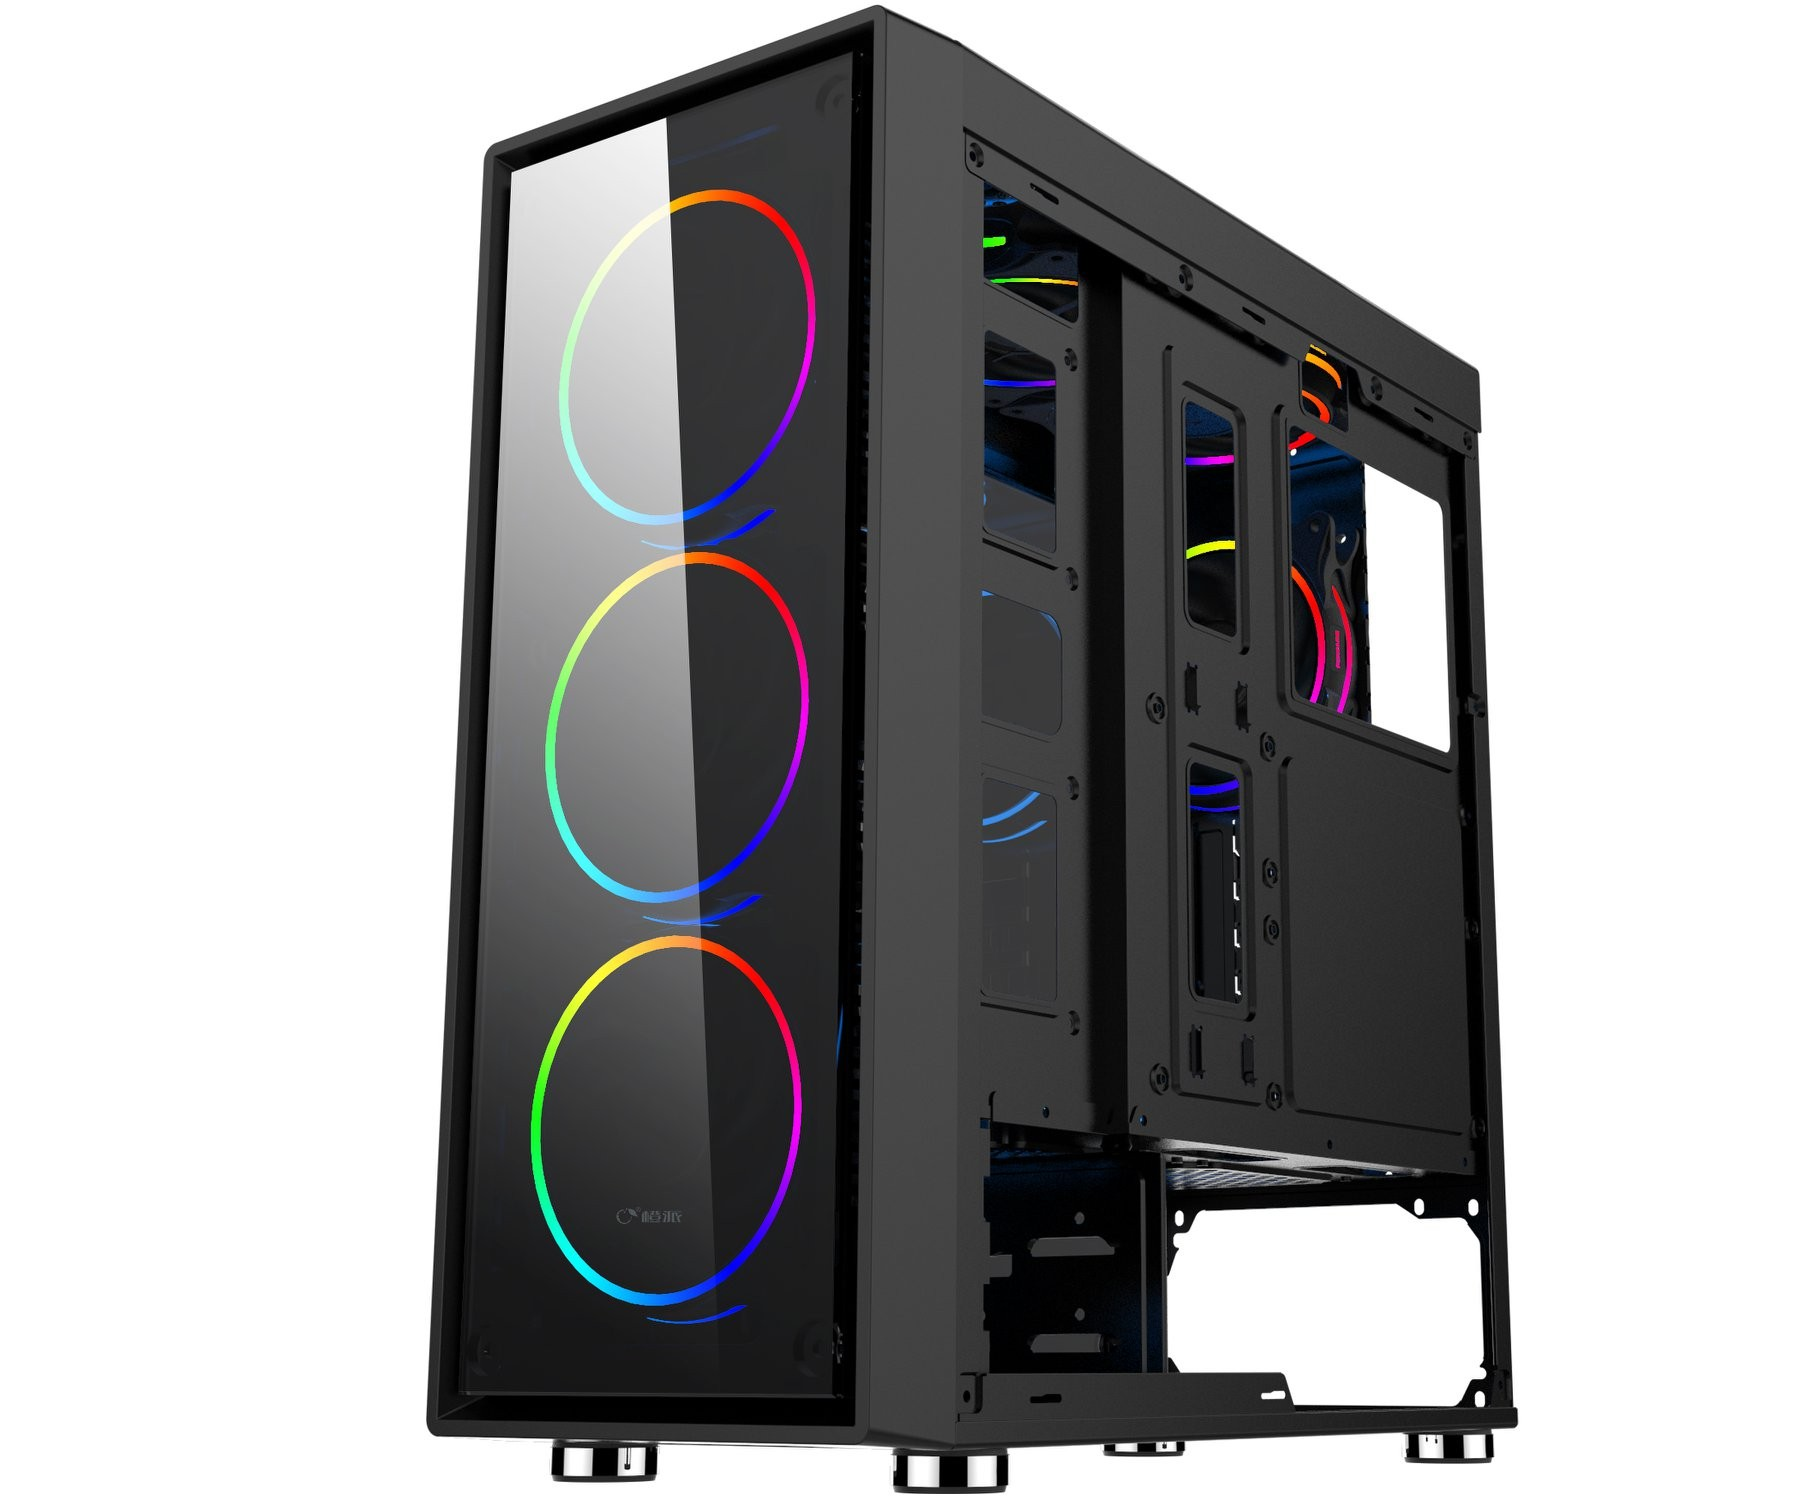 CASE máy tính FORGAME MIRAGE 2000 FULL ATX hỗ trợ 9 fan TEMPERED GLASS FRONT PANEL